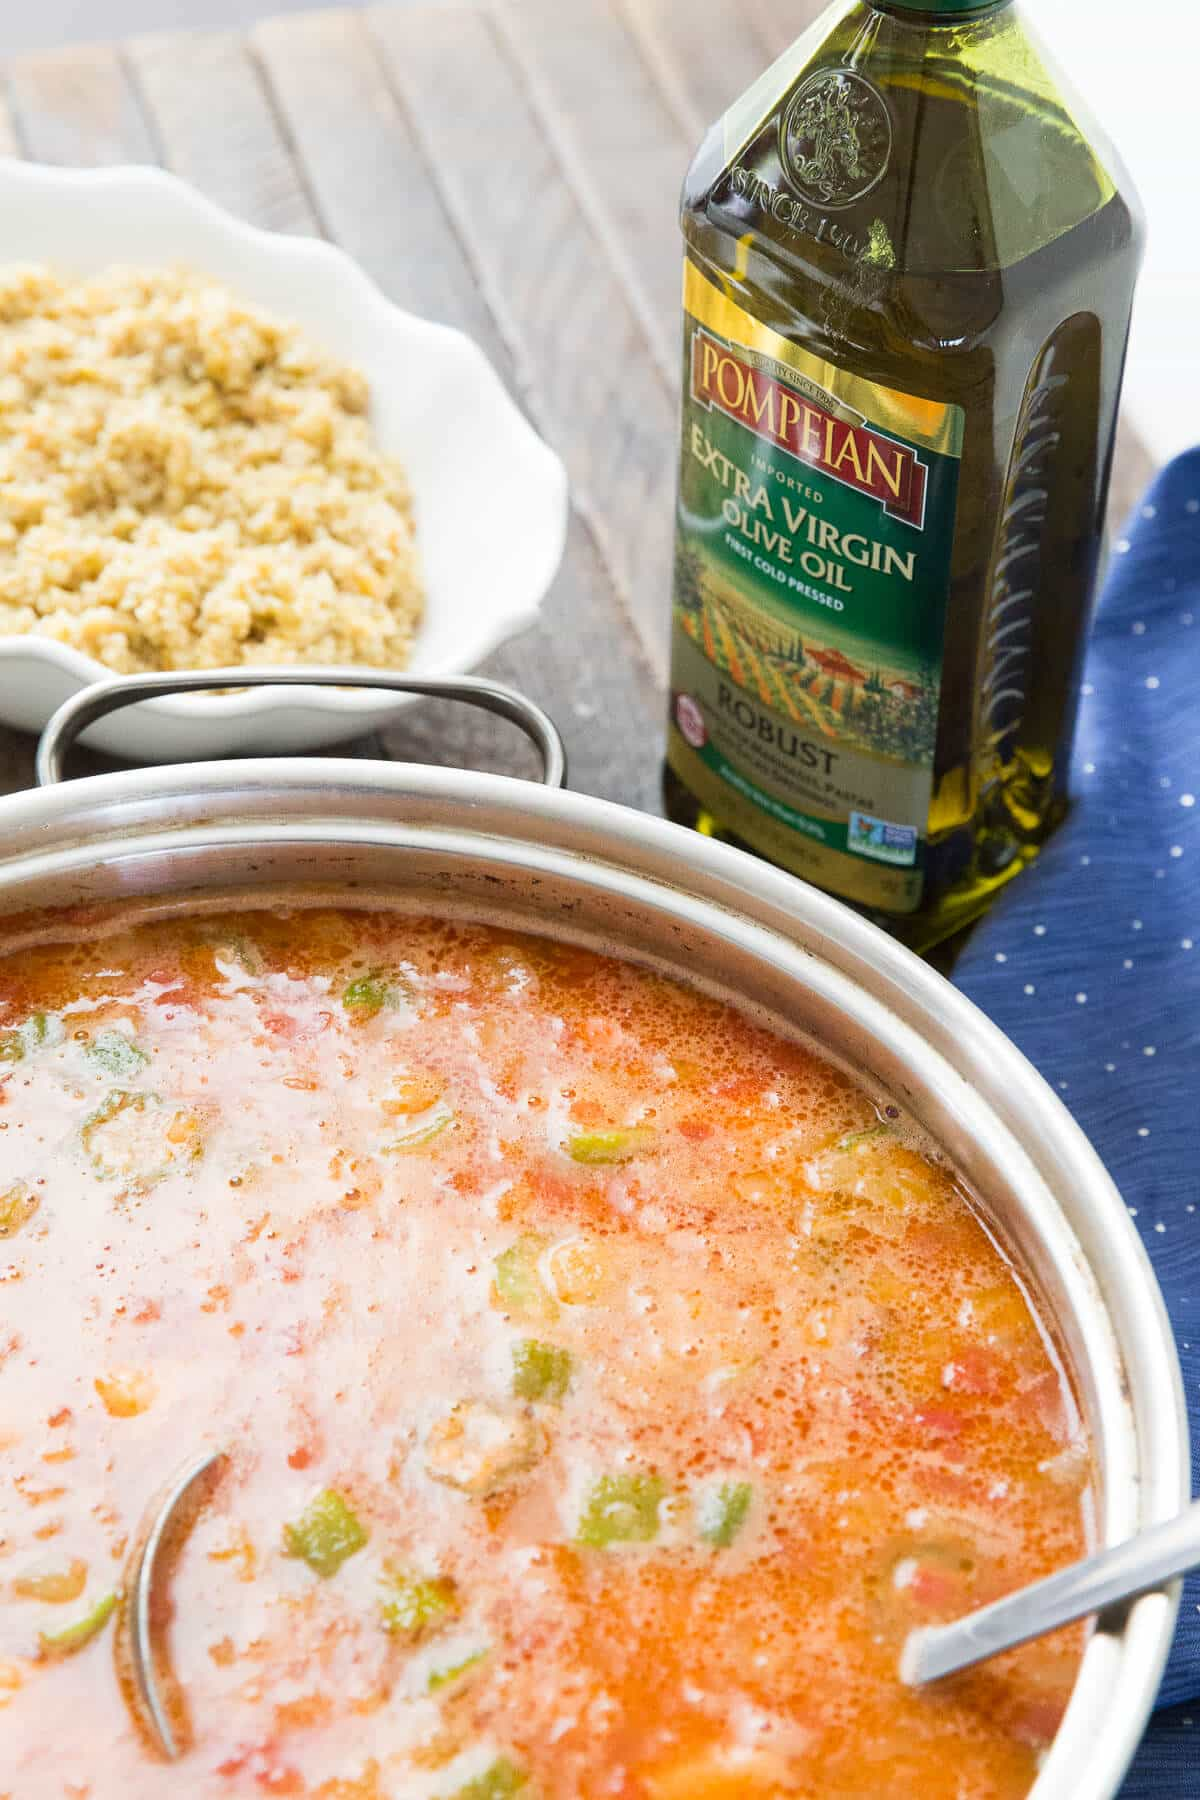 This easy gumbo recipe is going to go quickly! Everyone will love this filling meal!